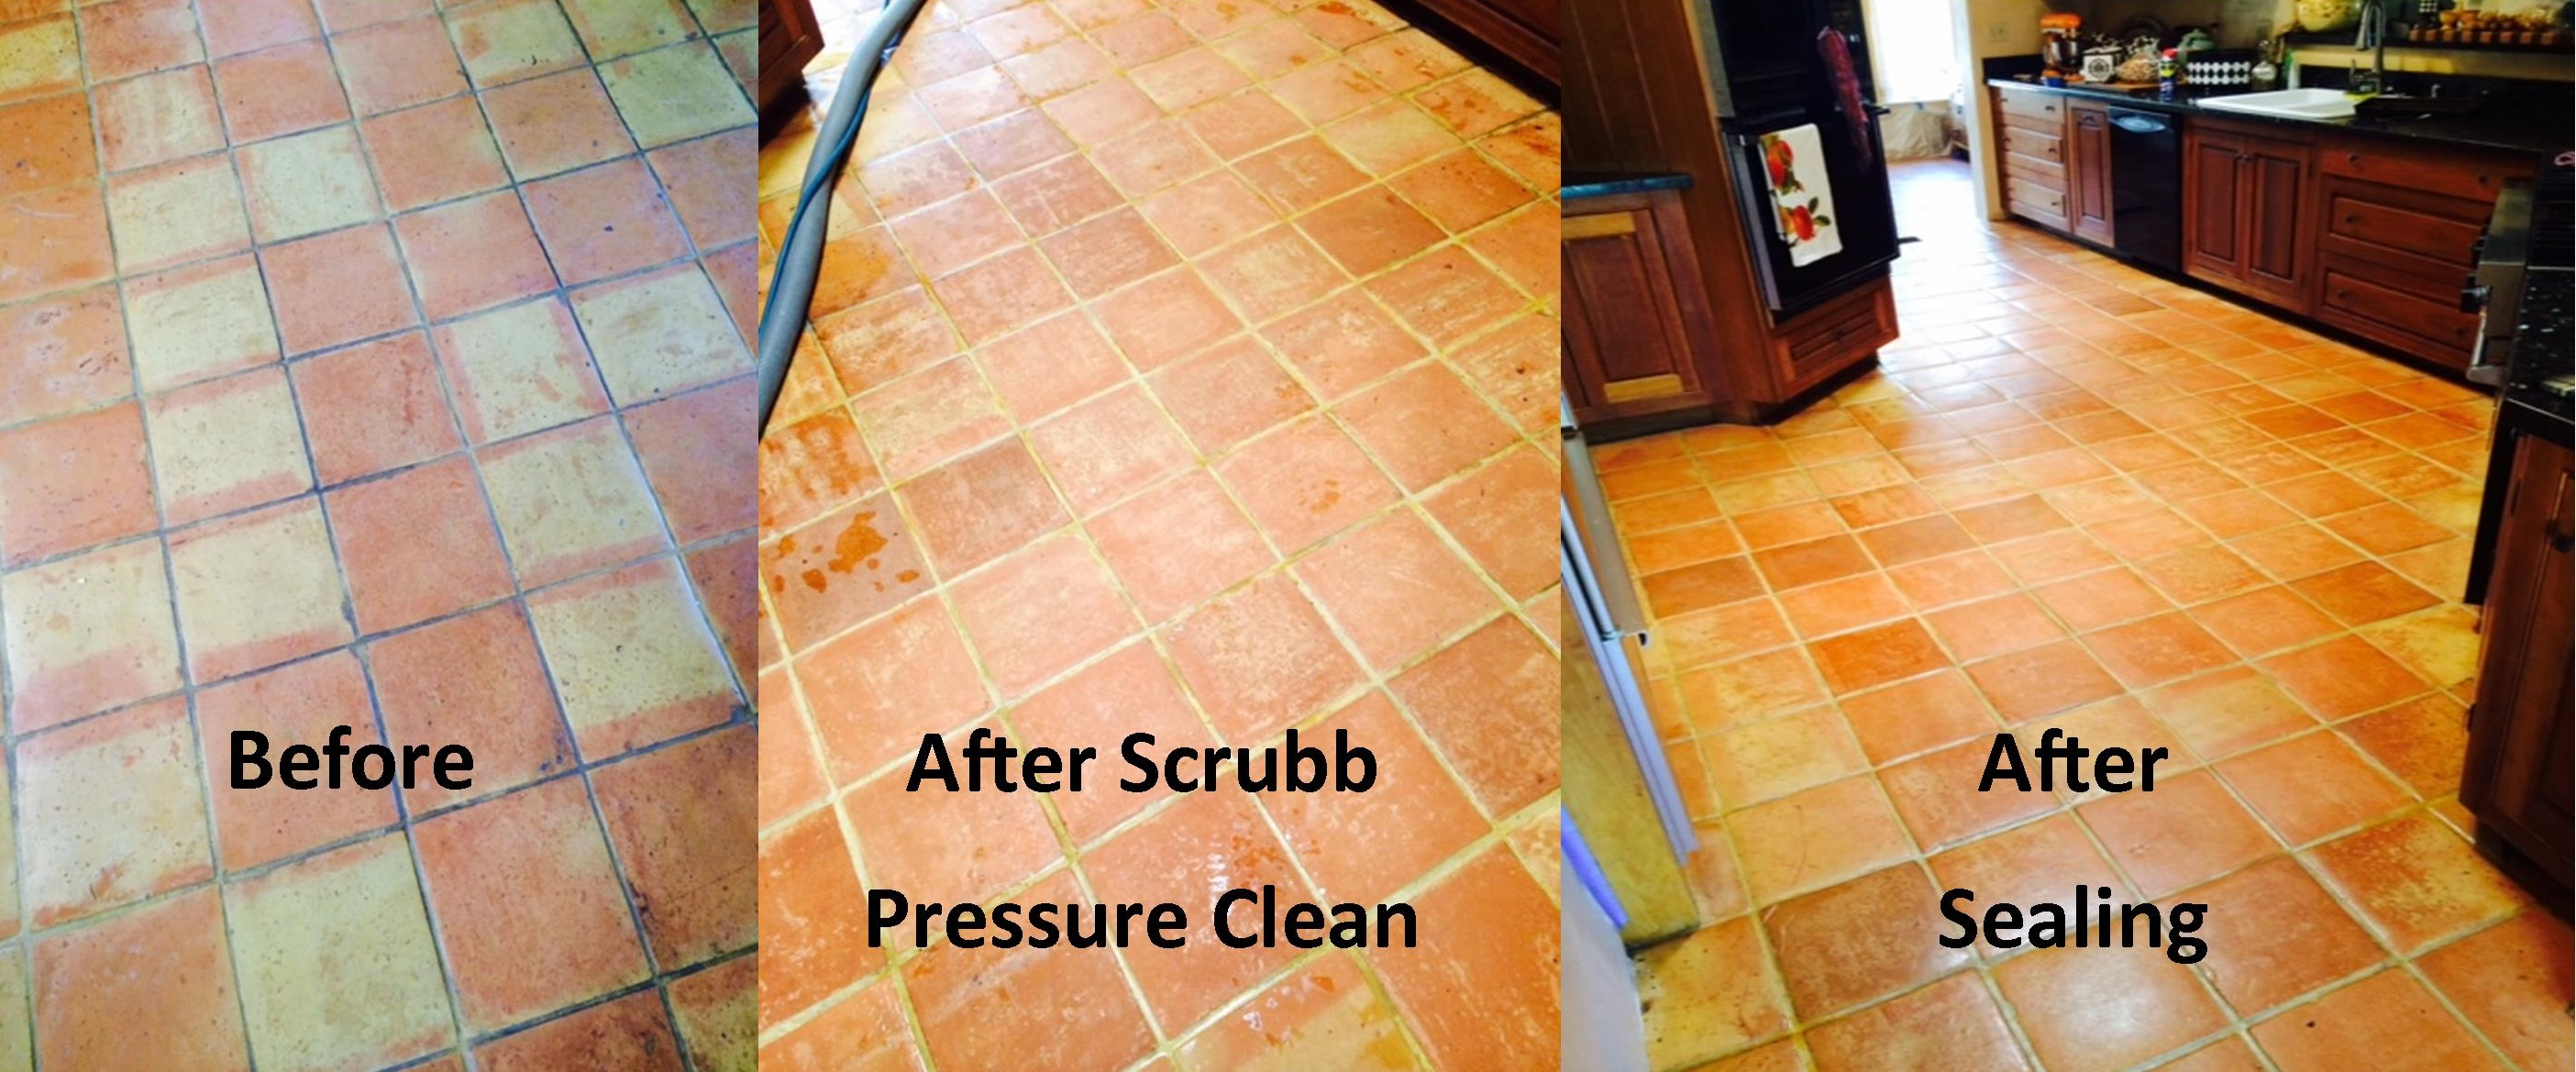 Saltillo Floor Cleaning And Sealing Sanicare Carpet Cleaning Albuquerque